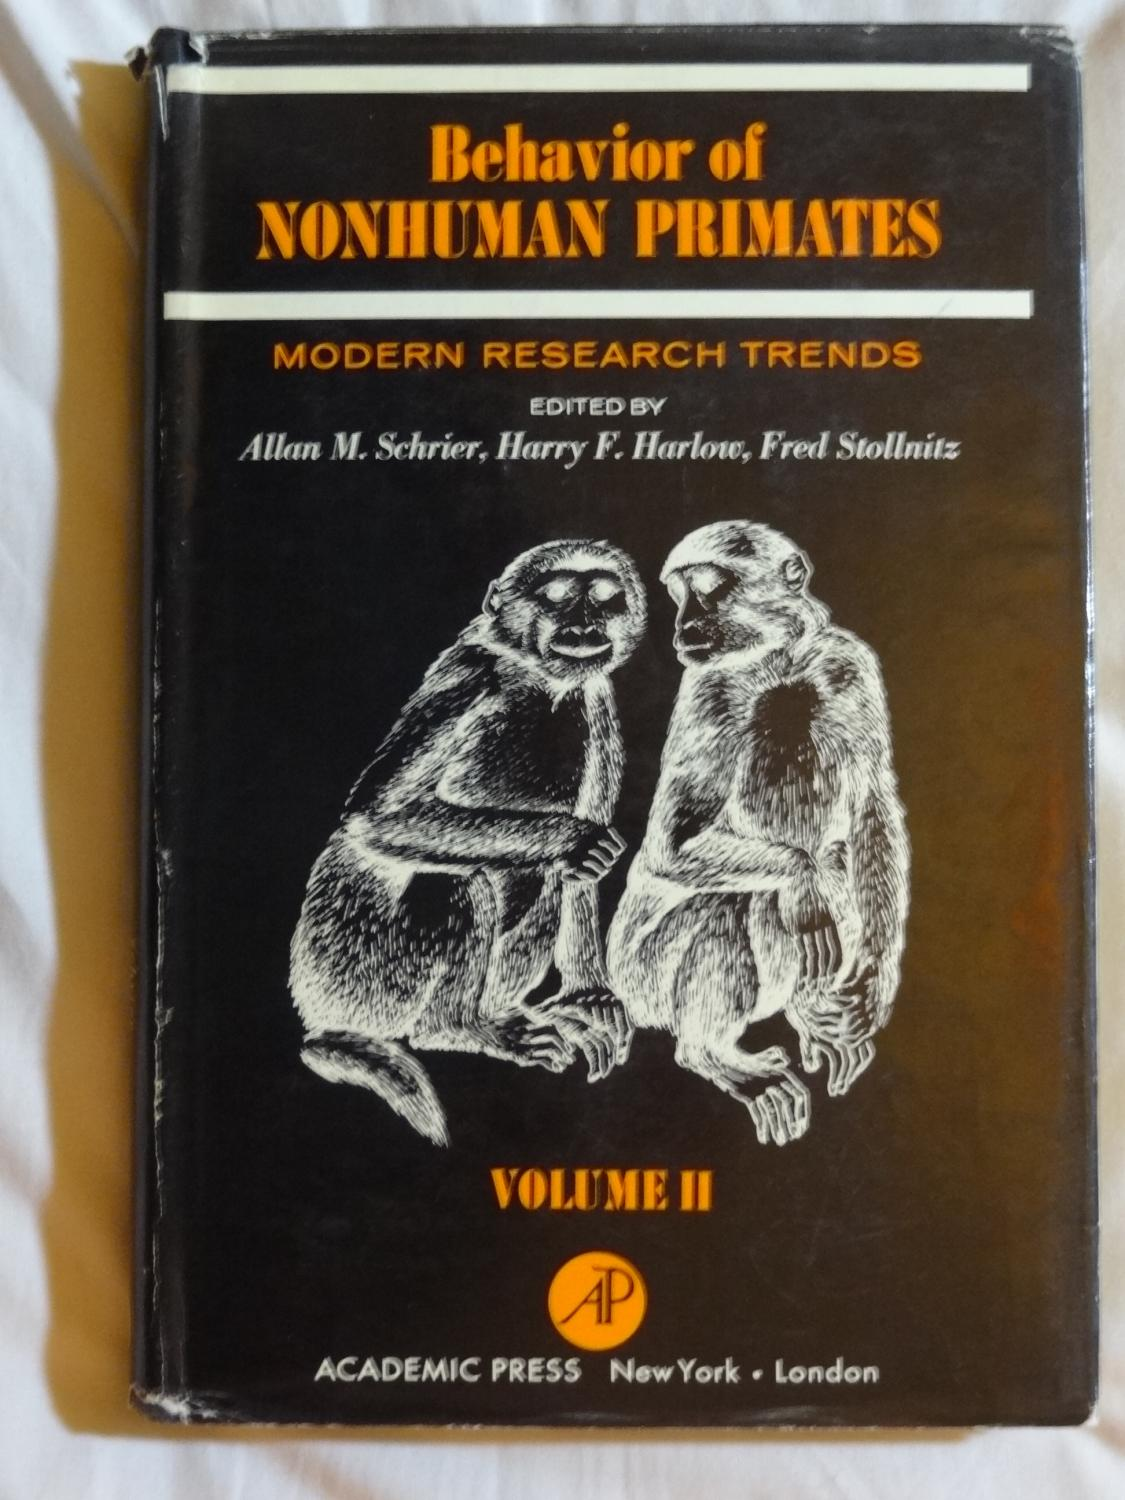 BEHAVIOR OF NONHUMAN PRIMATES Modern Research Trends Volume II